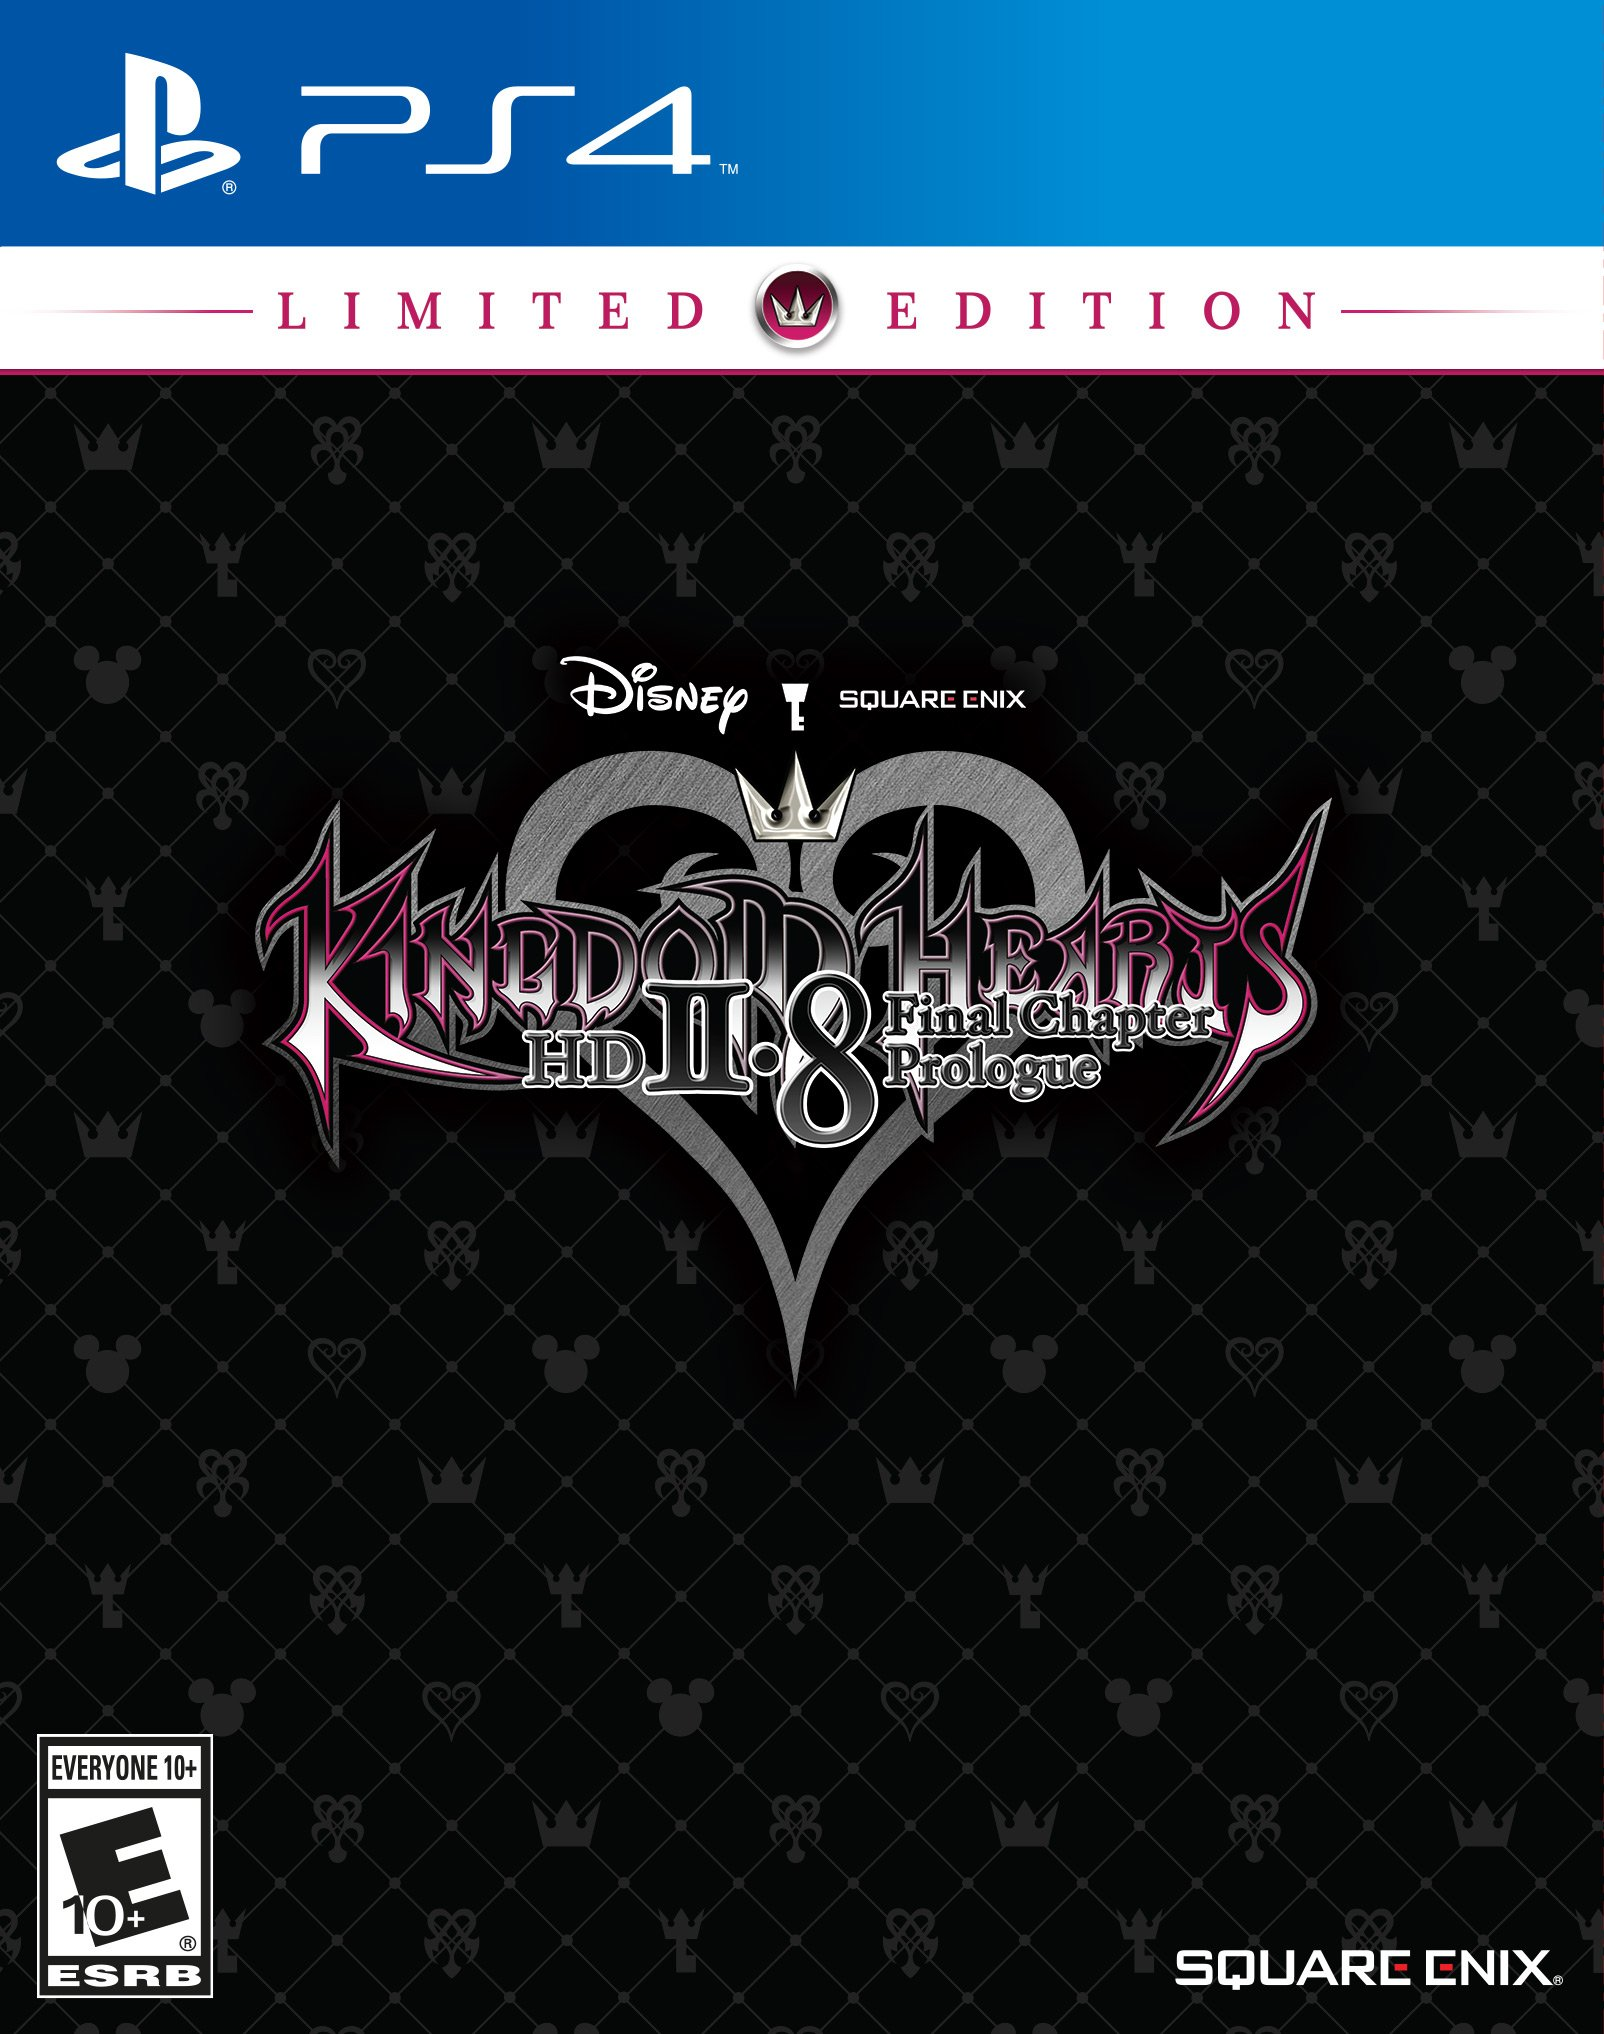 Kingdom Hearts HD 2 8 Final Chapter Prologue Limited Edition